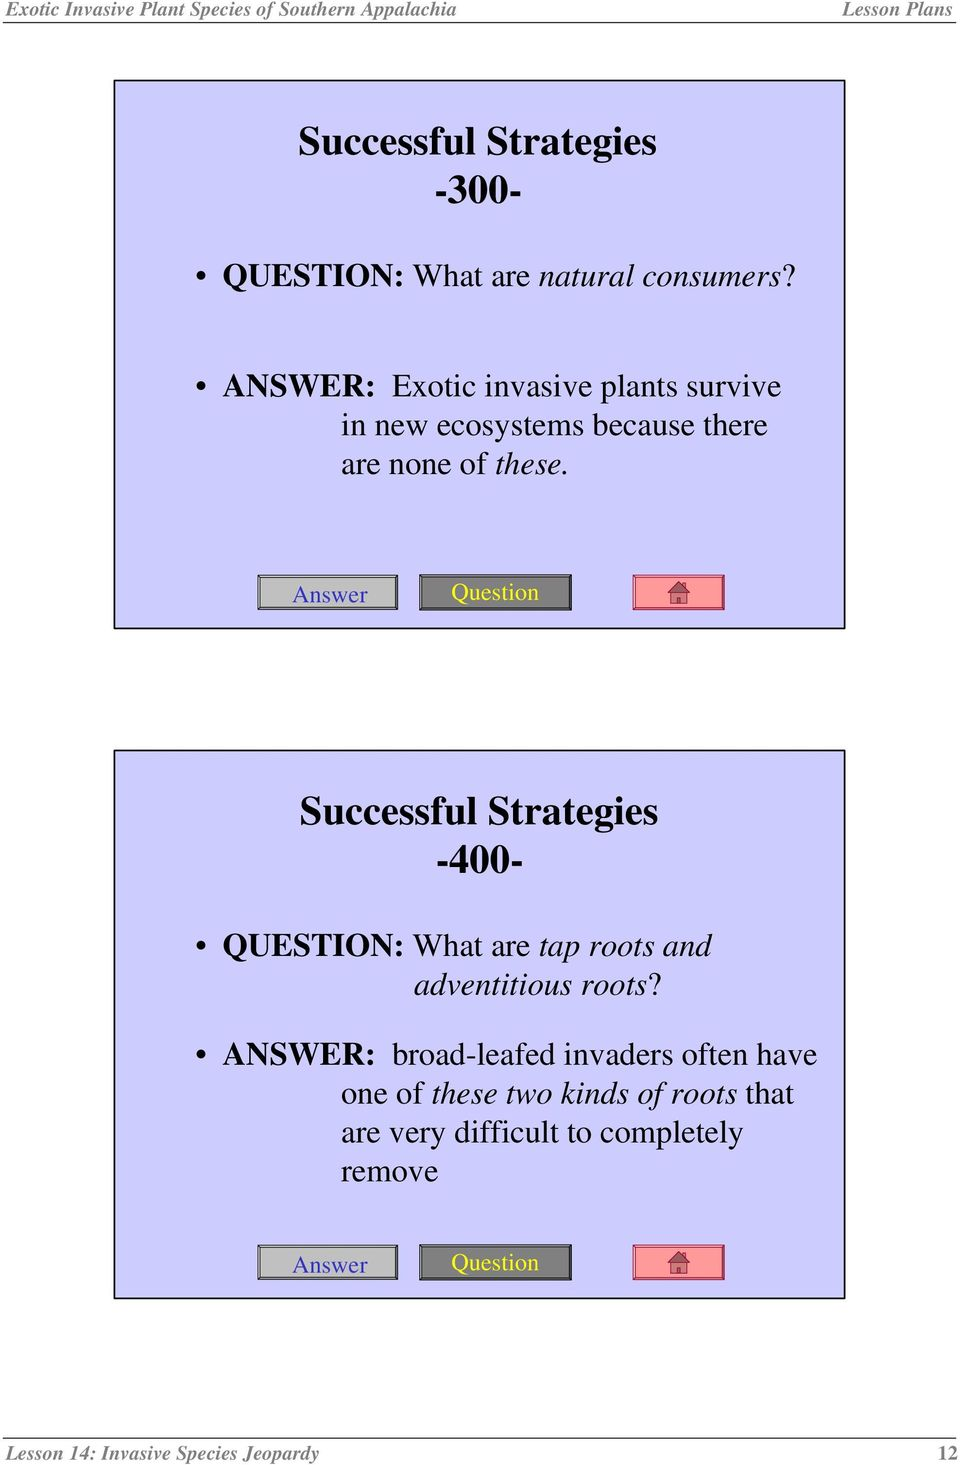 Successful Strategies -400- QUESTION: What are tap roots and adventitious roots?